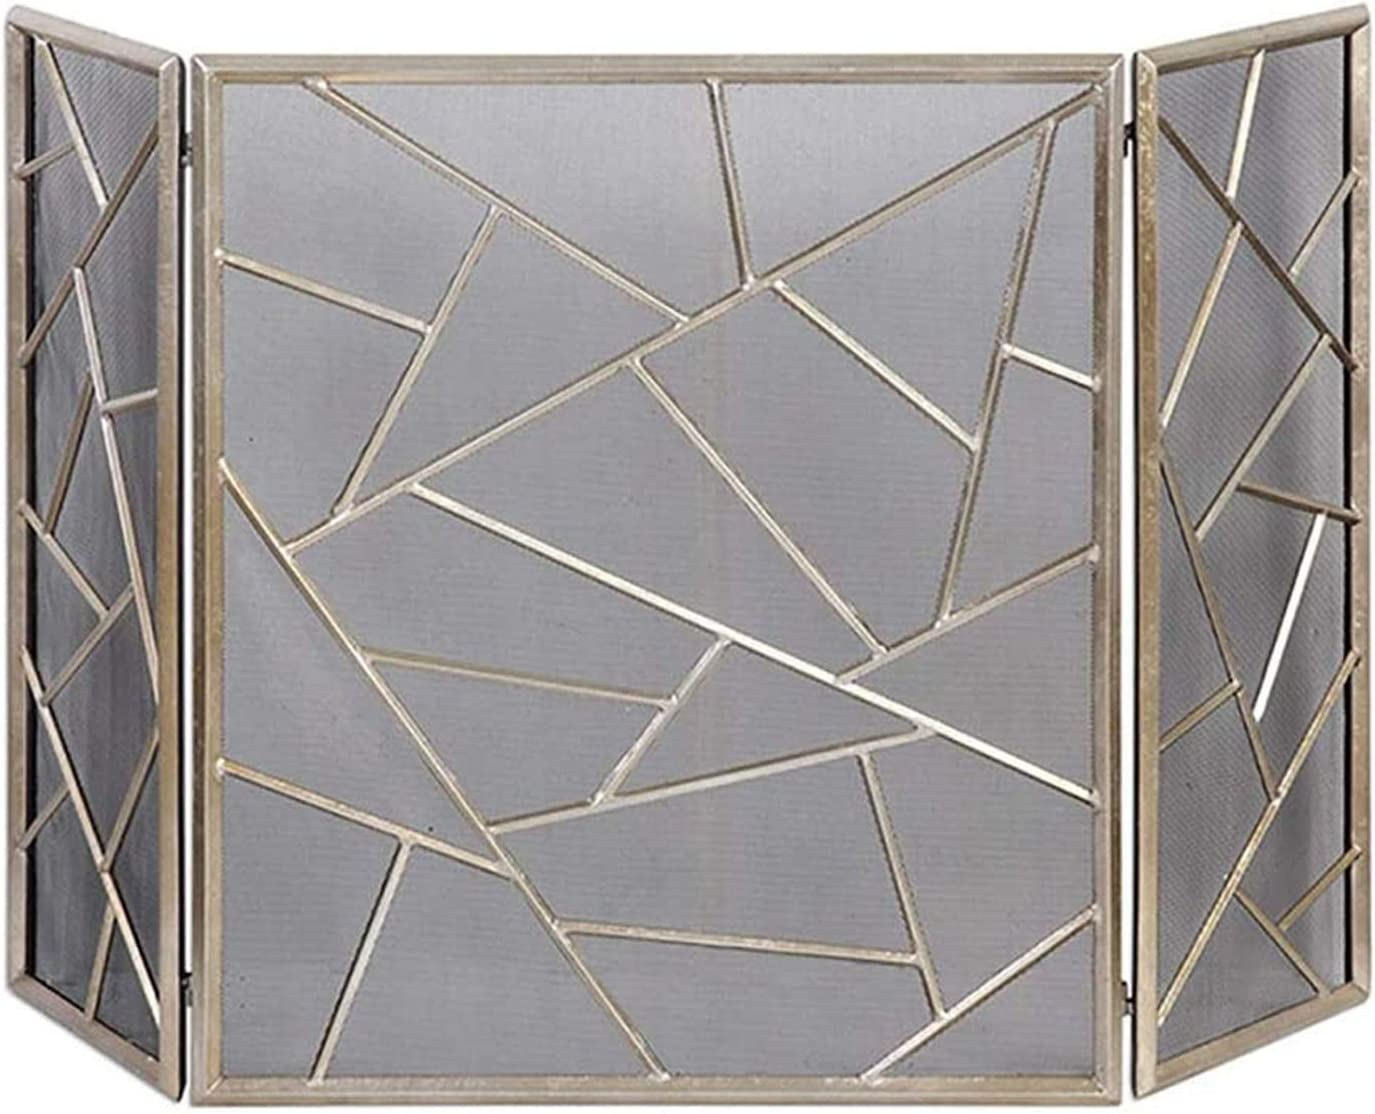 FUFU Mesh Fireplace 5% OFF Screen 3 Protecto Fire Foldable Panel Baltimore Mall